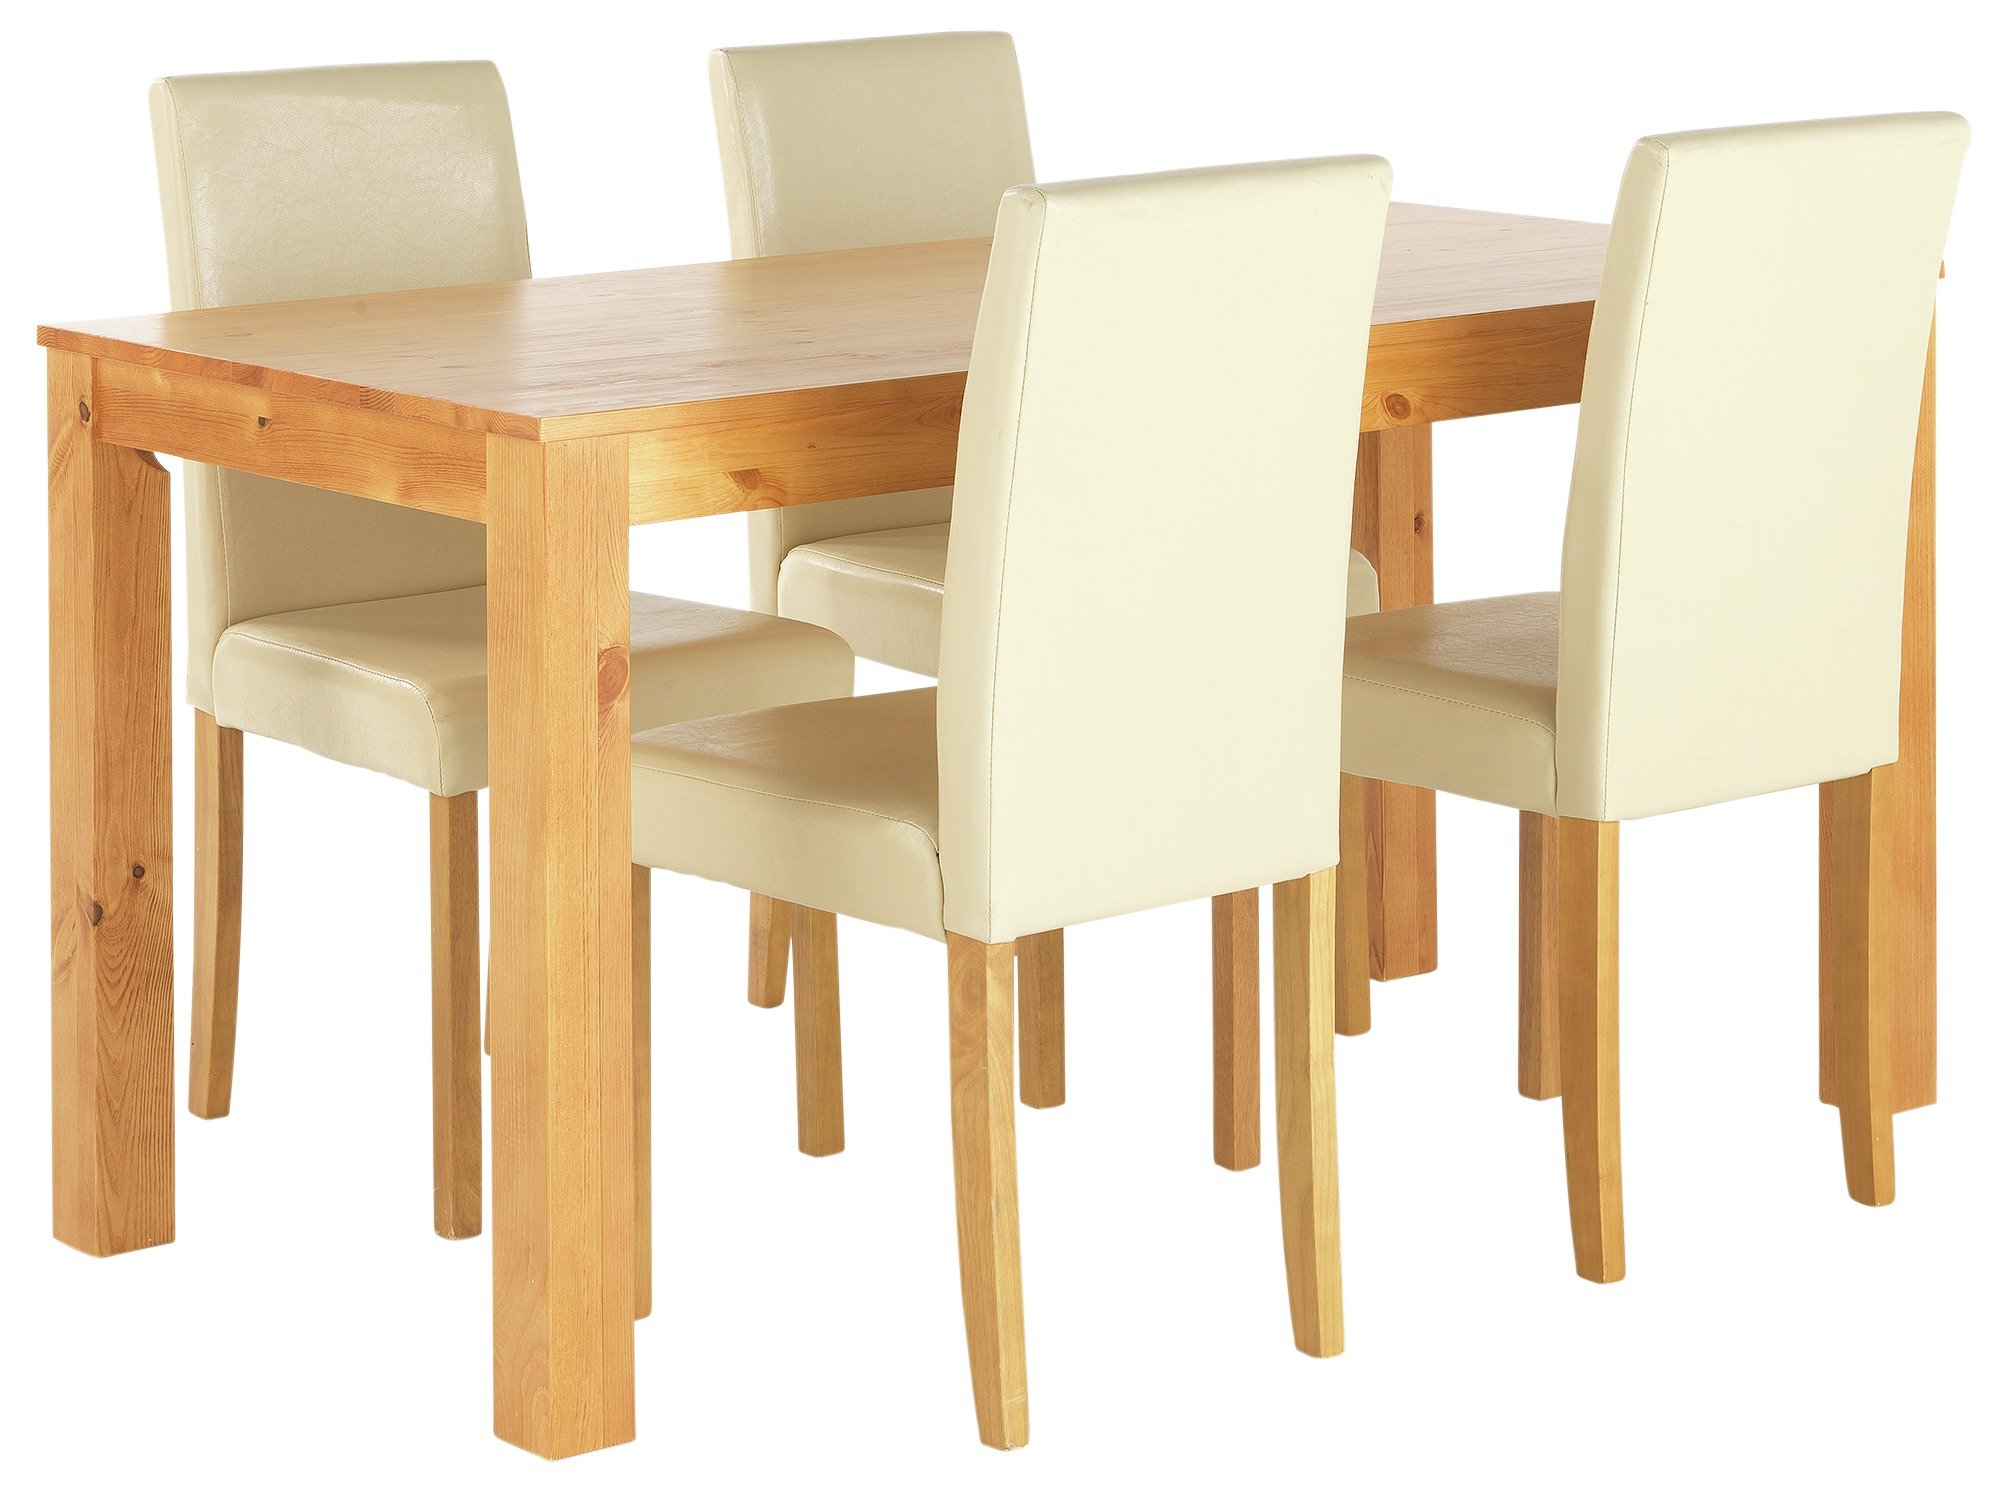 HOME Newton Solid Wood Table & 4 Chairs - Cream + Oak Stain